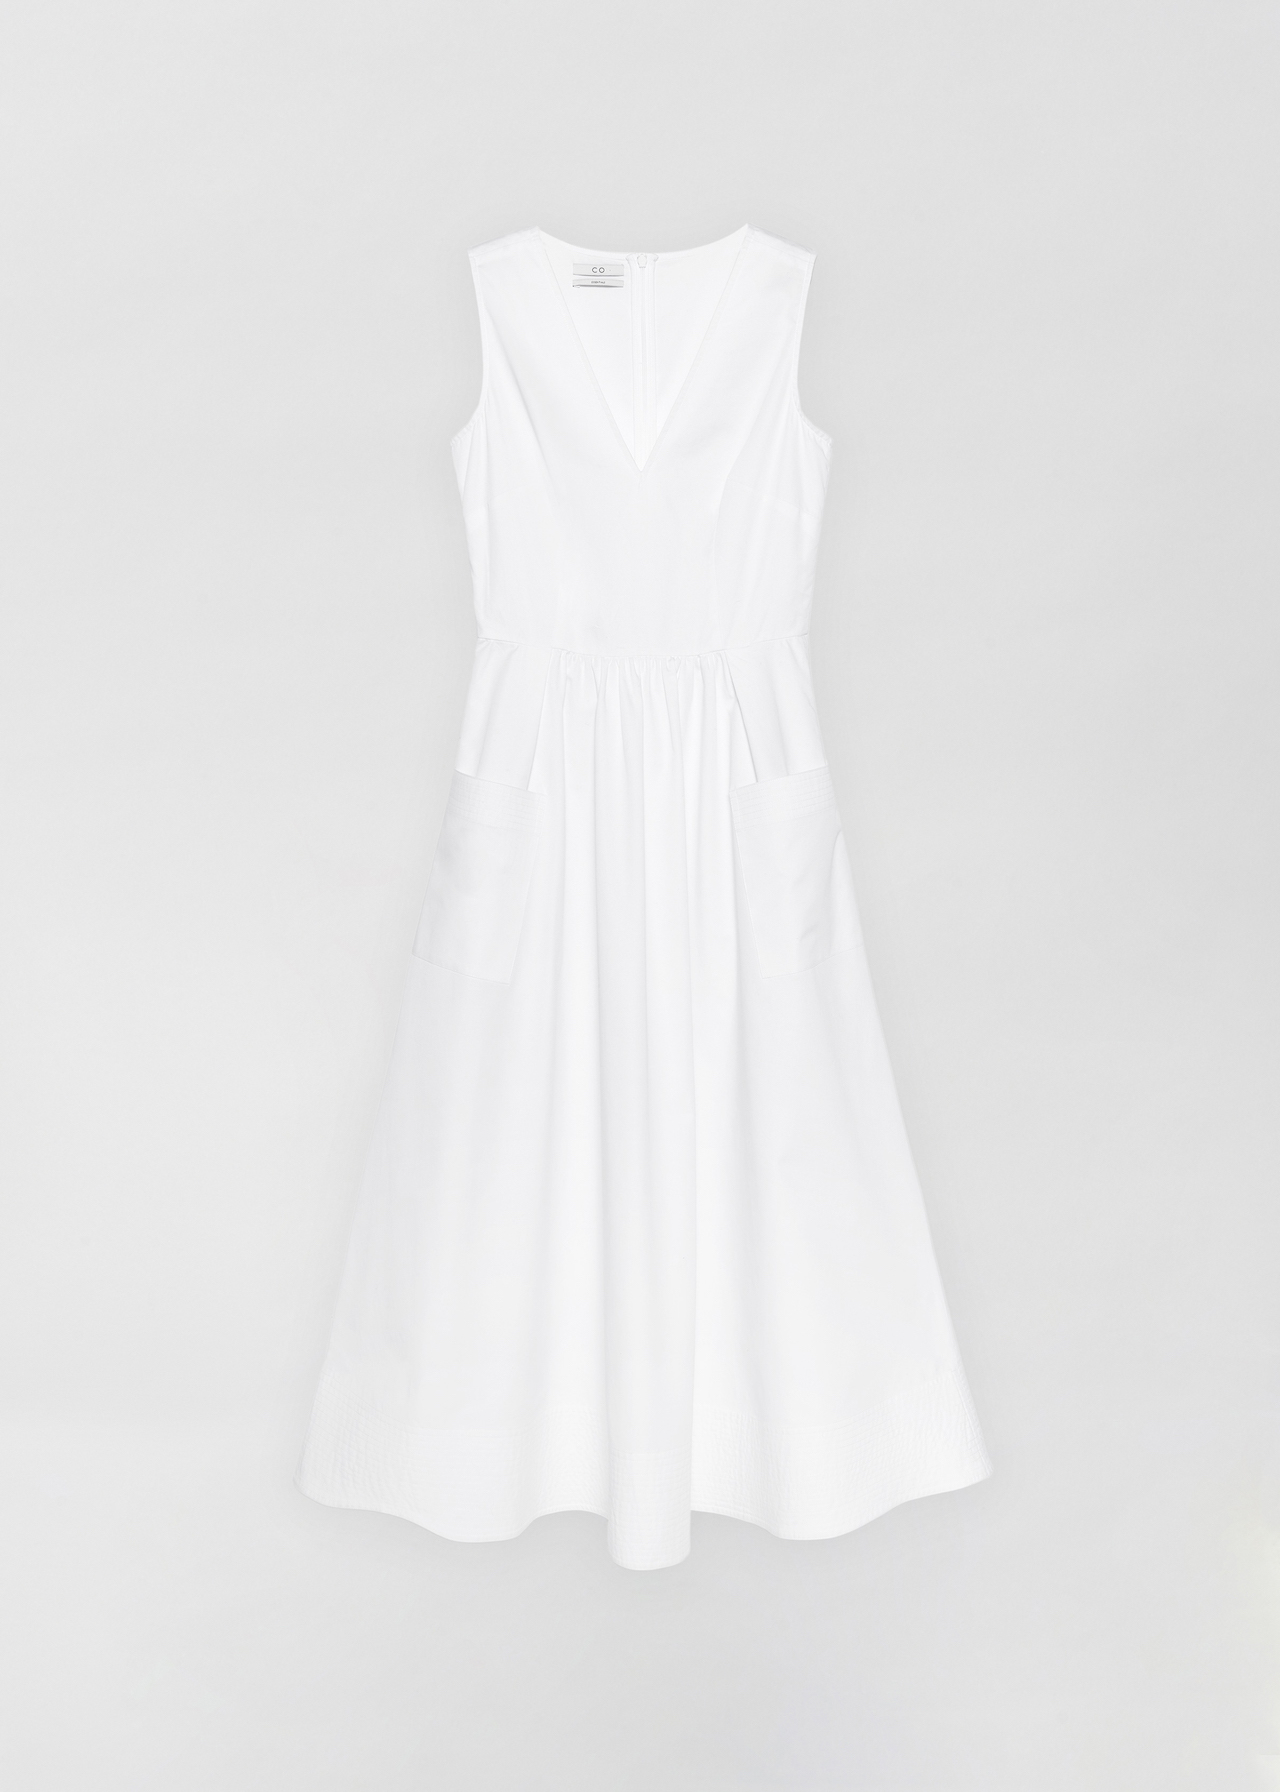 Sleeveless Trapunto Hem Dress - Navy in White by Co Collections